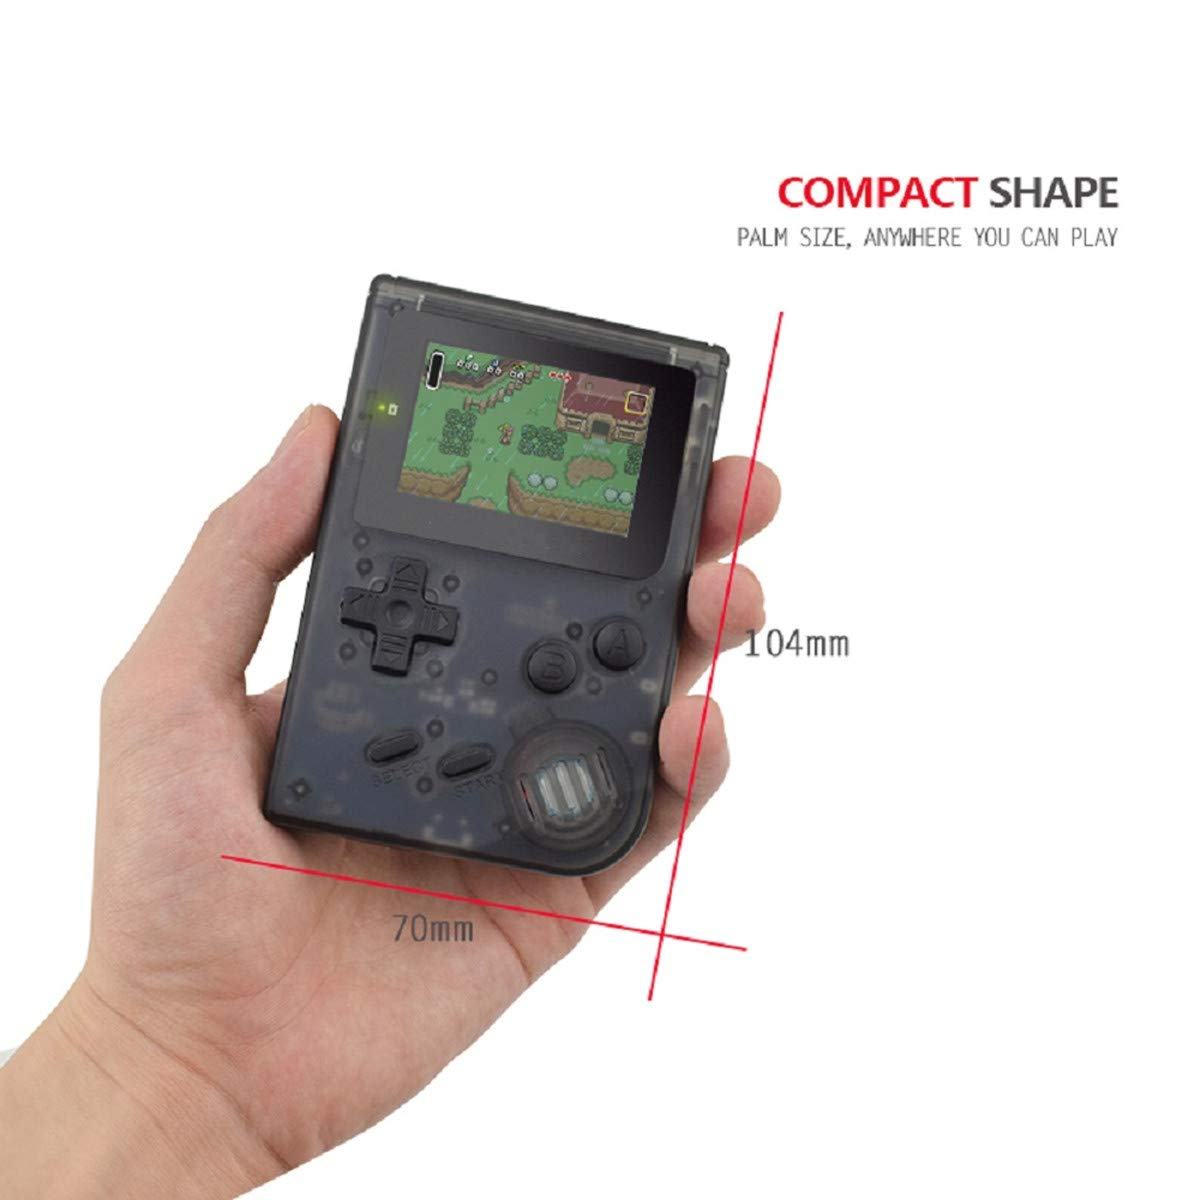 BAORUITENG Handheld Games Consoles , Retro TV Game Console Video Game Console Player 2.0 Inch Game Console with 1169 GBA System Classic Games for Kids Gift (Black) by BAORUITENG (Image #6)